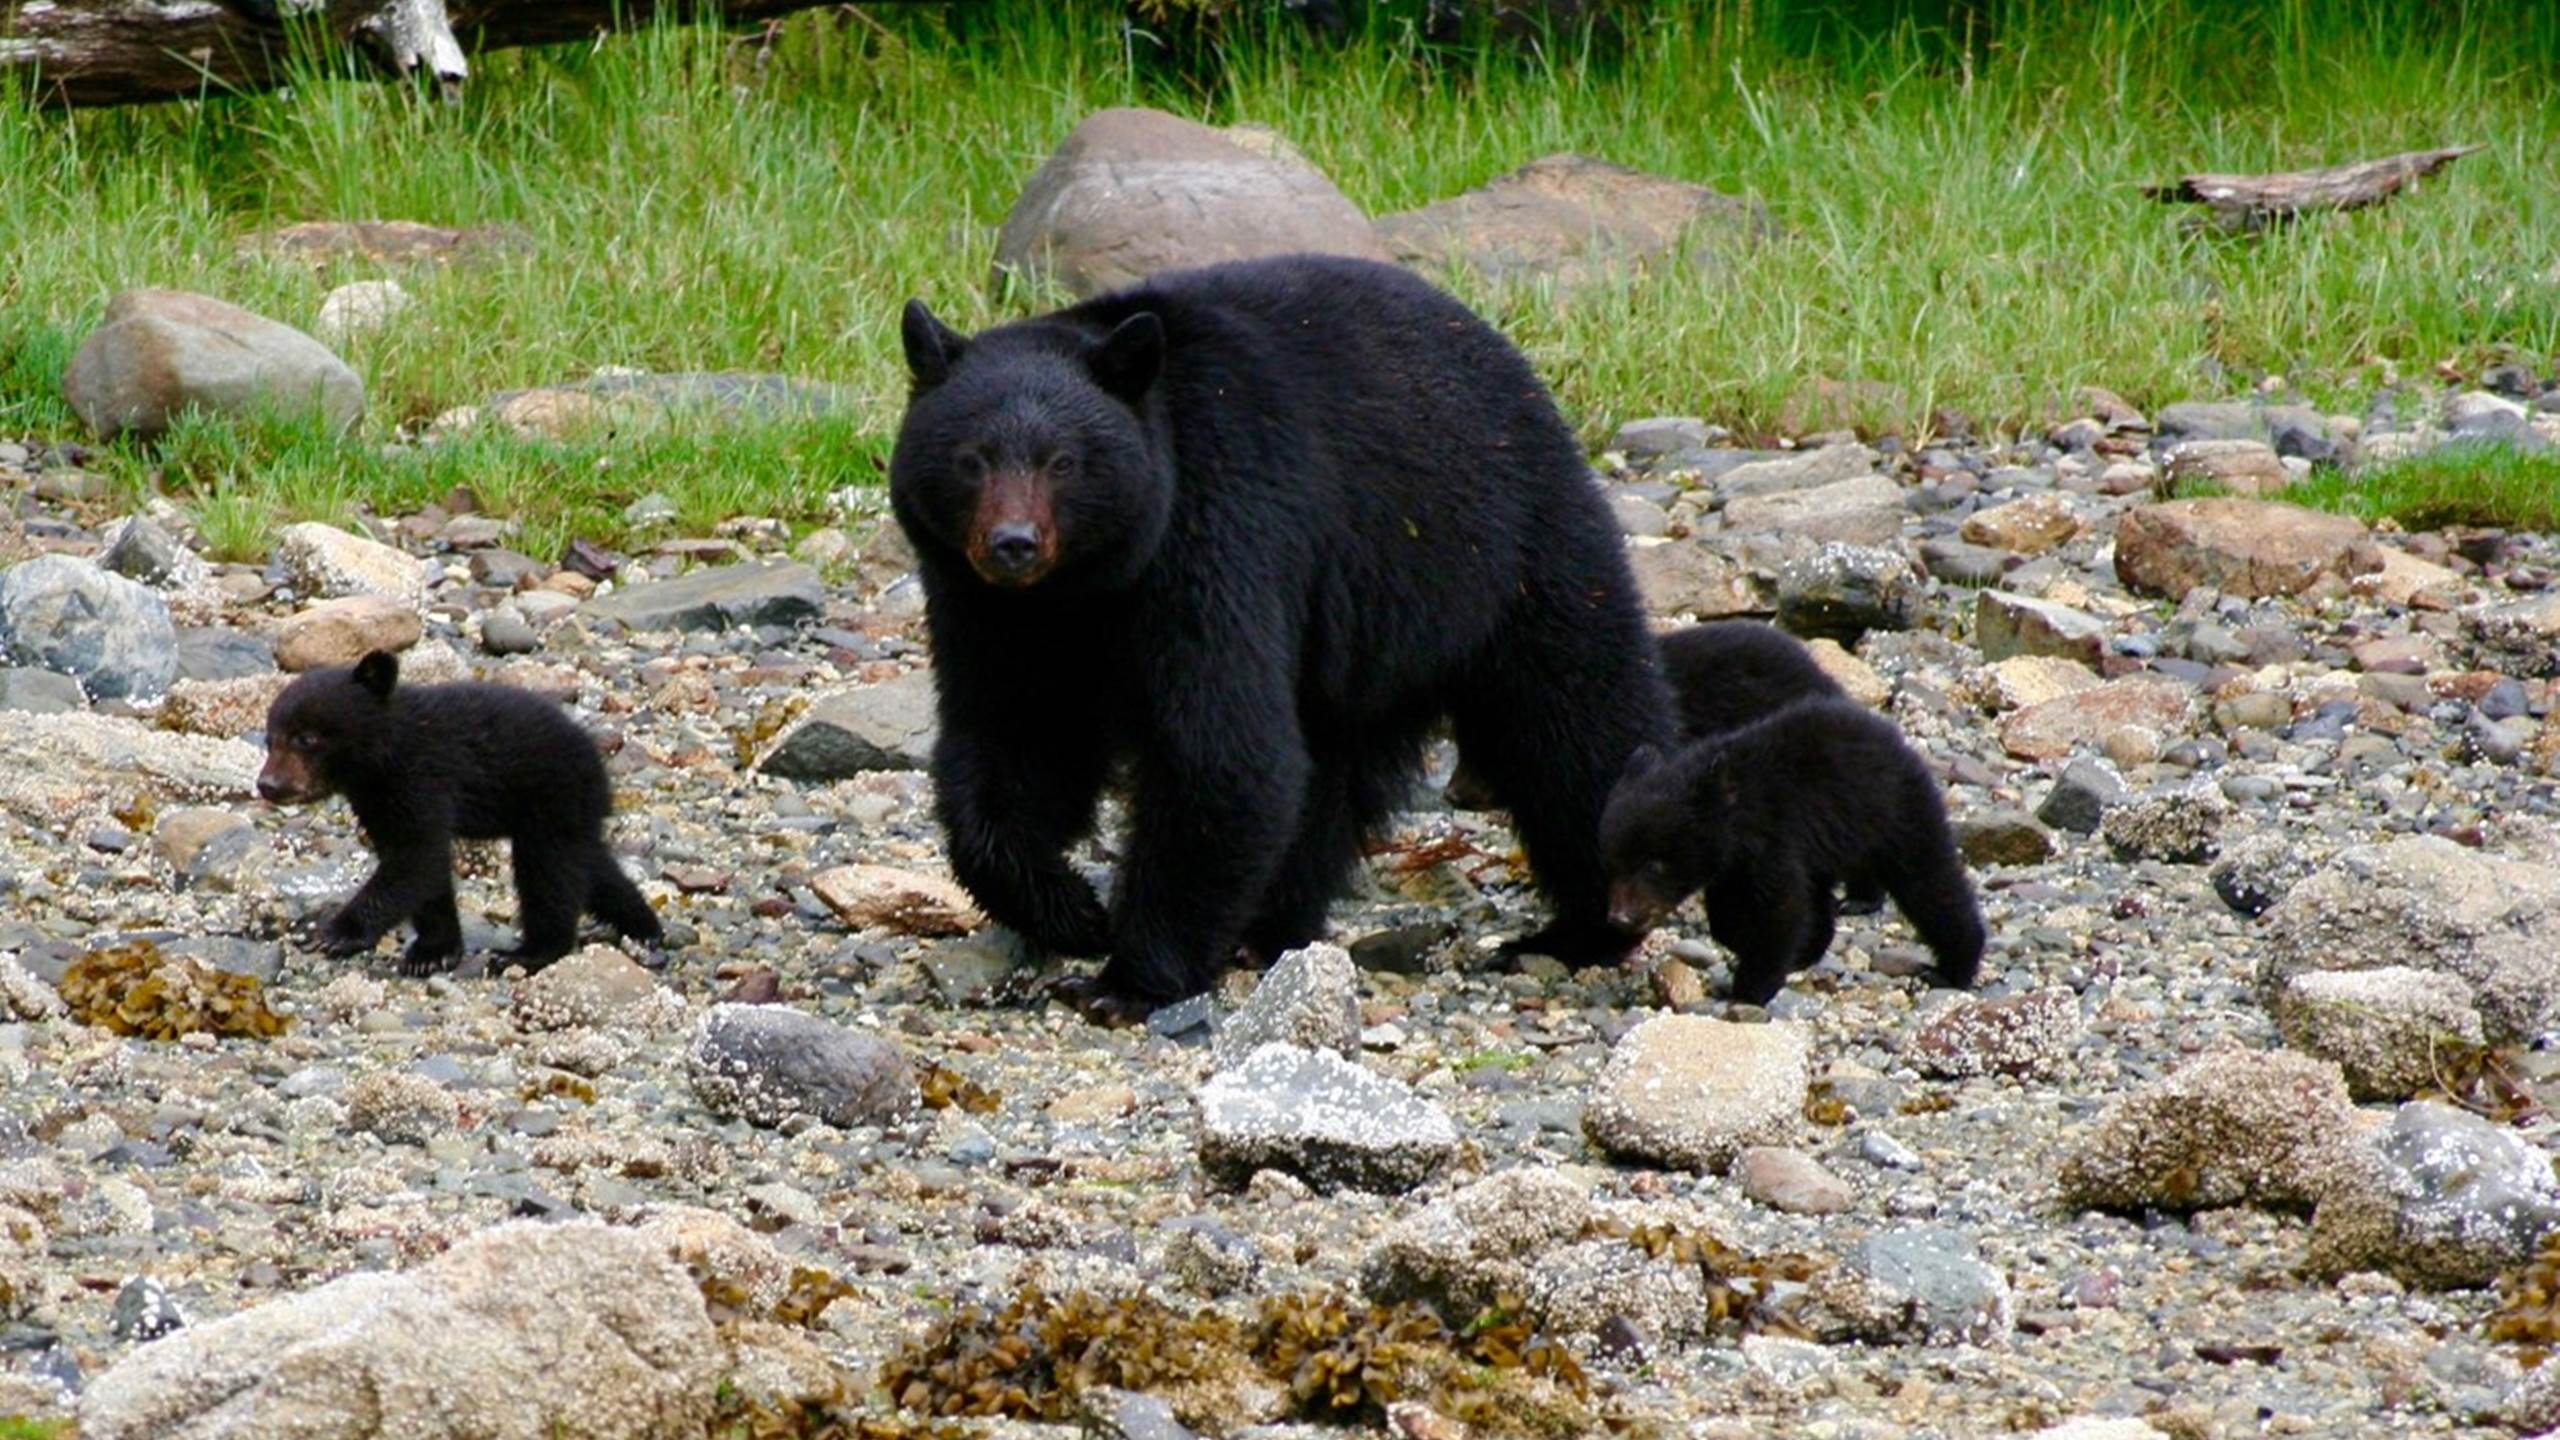 Mama black bear and cubs